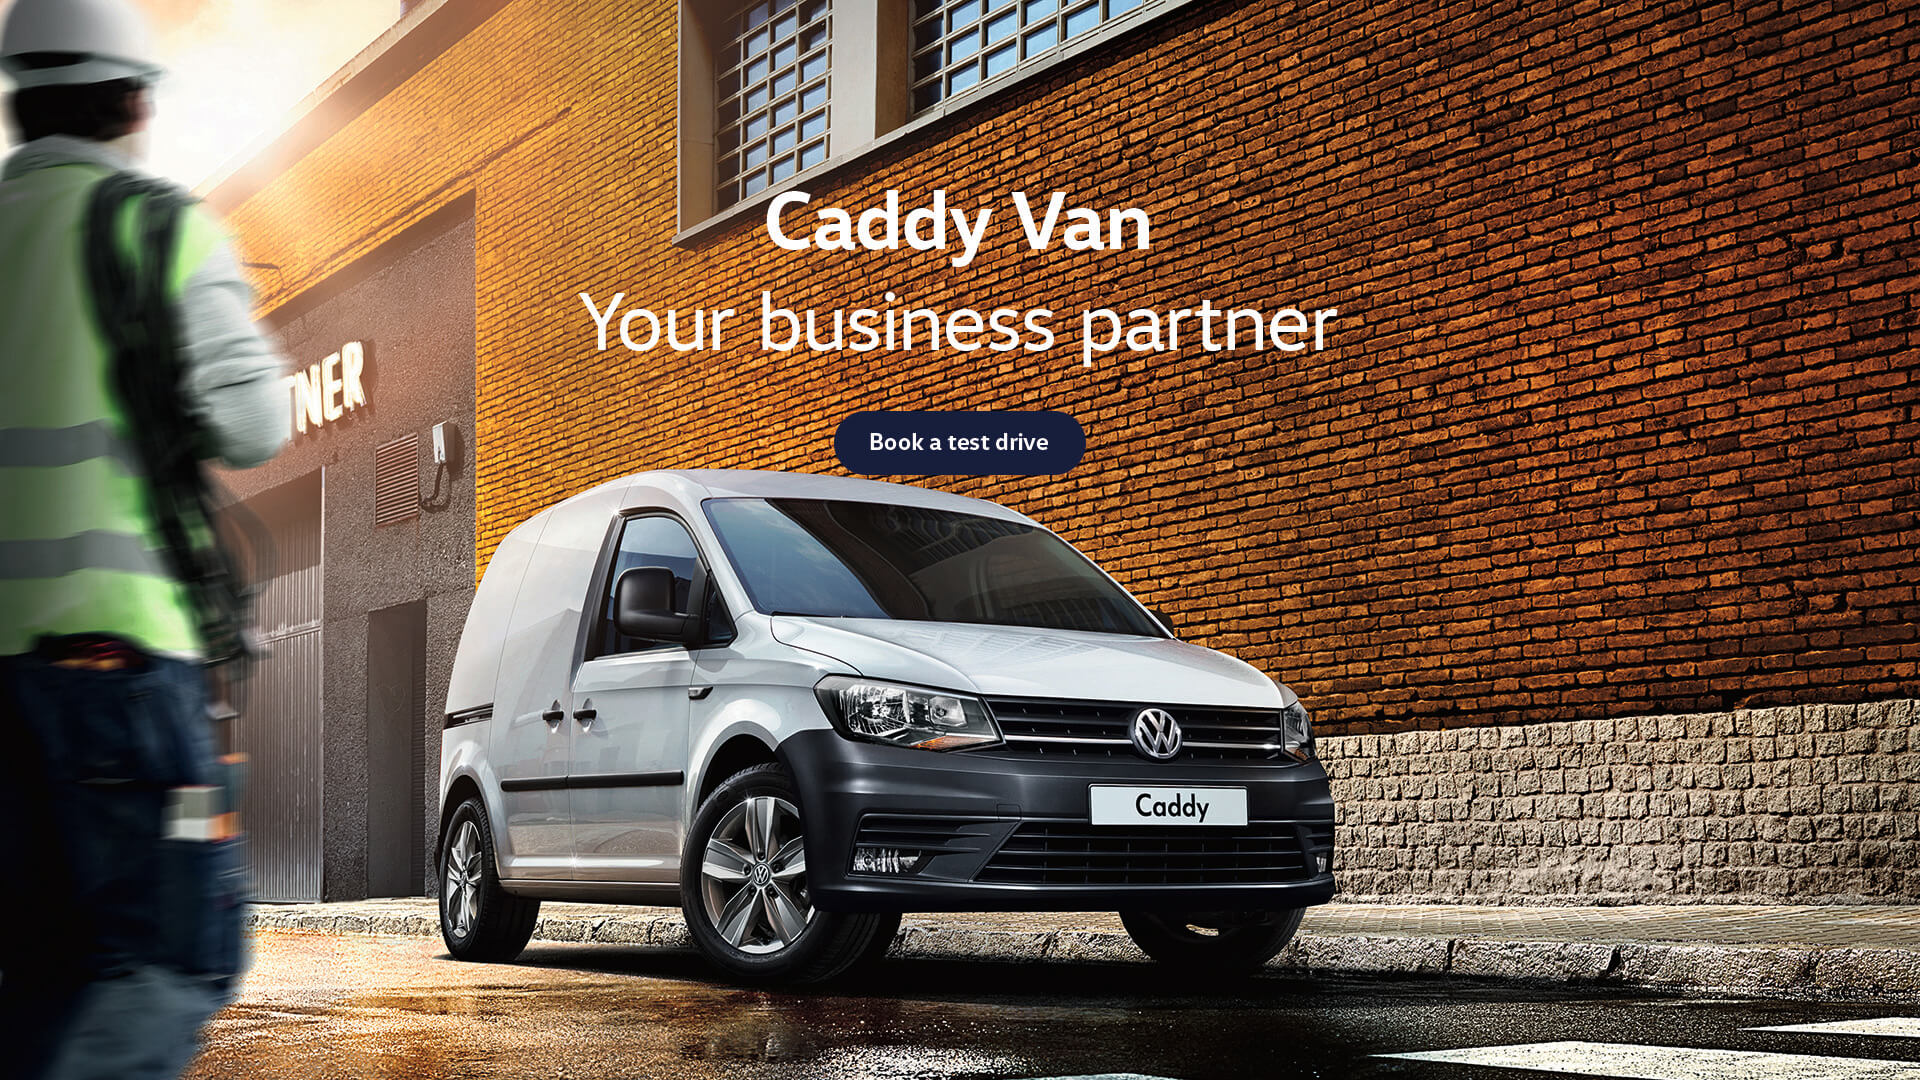 Volkswagen Caddy Van. Your business partner. Test drive today at Westpoint Volkswagen, Brisbane